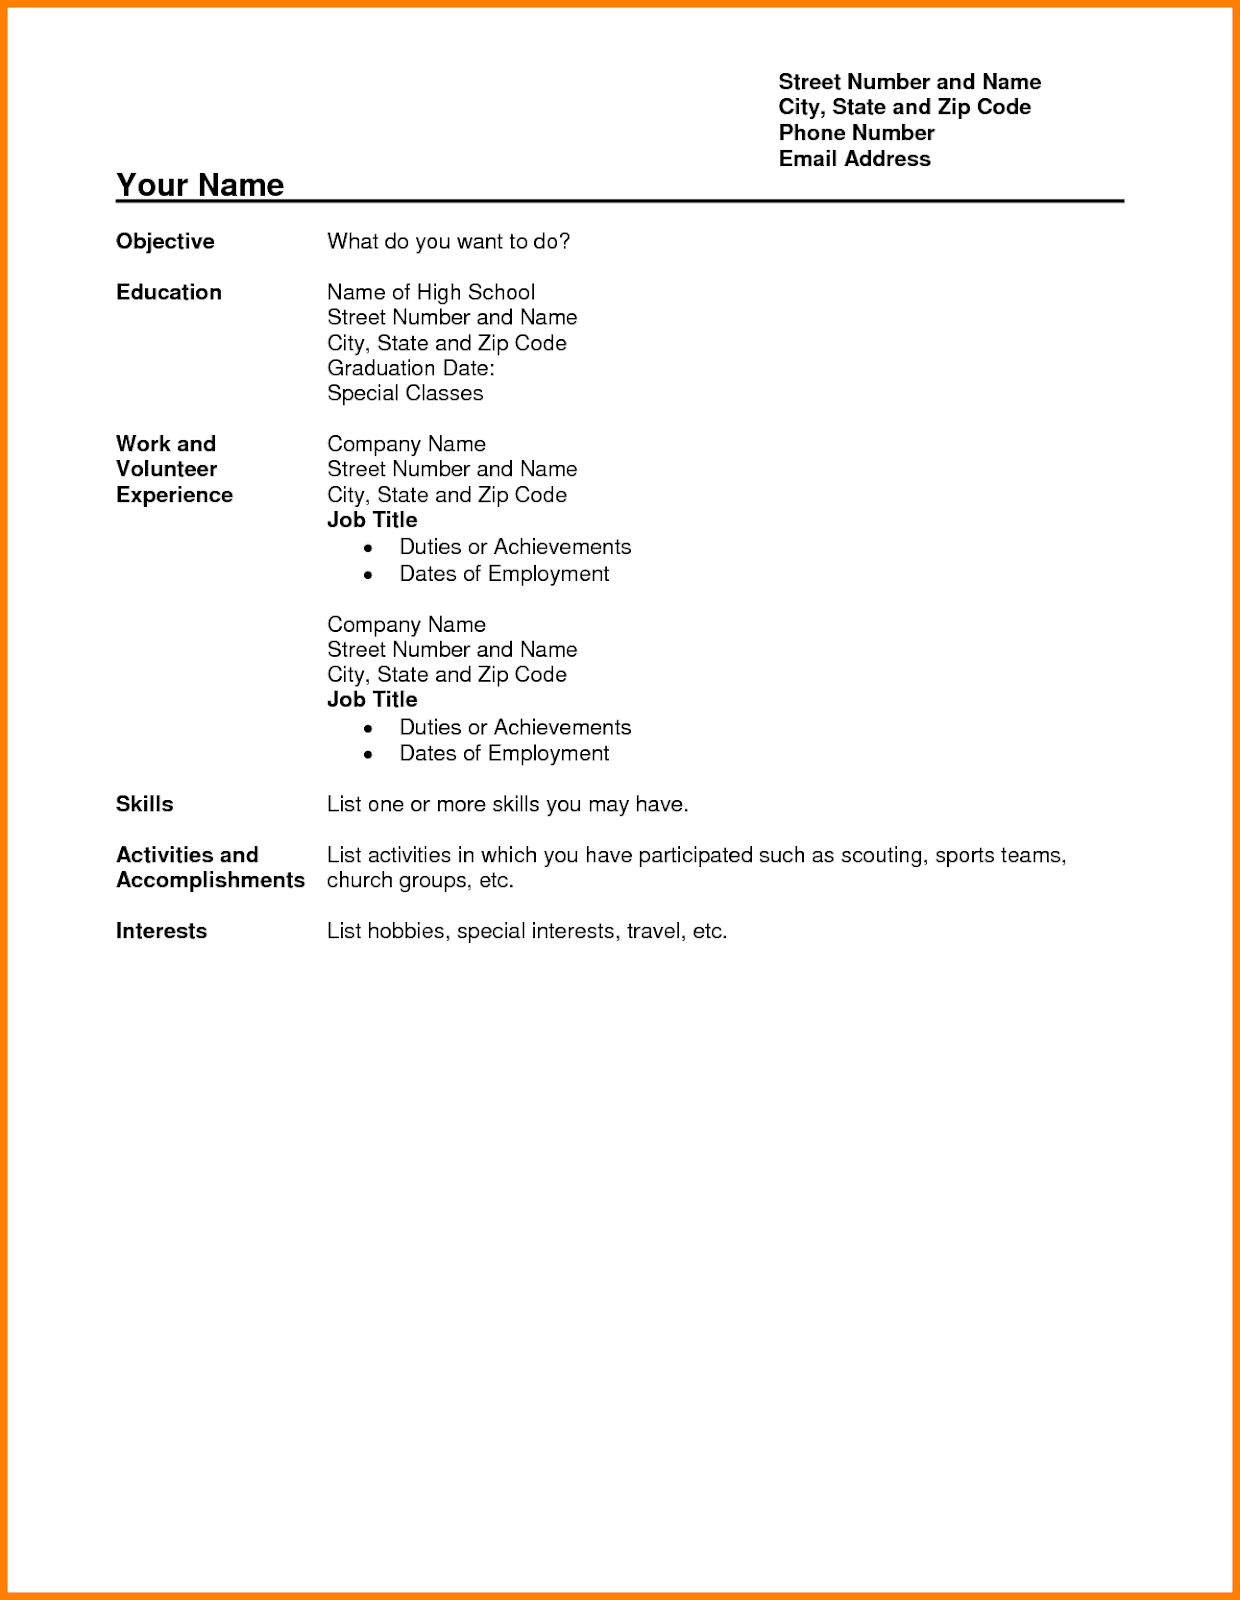 high school student resume examples high school student resume examples for college high school student resume examples pdf high school student resume examples canada high school student resume examples no work experience high school student resume examples first job high school student resume examples australia high school student resume examples 2019 high school student resume examples